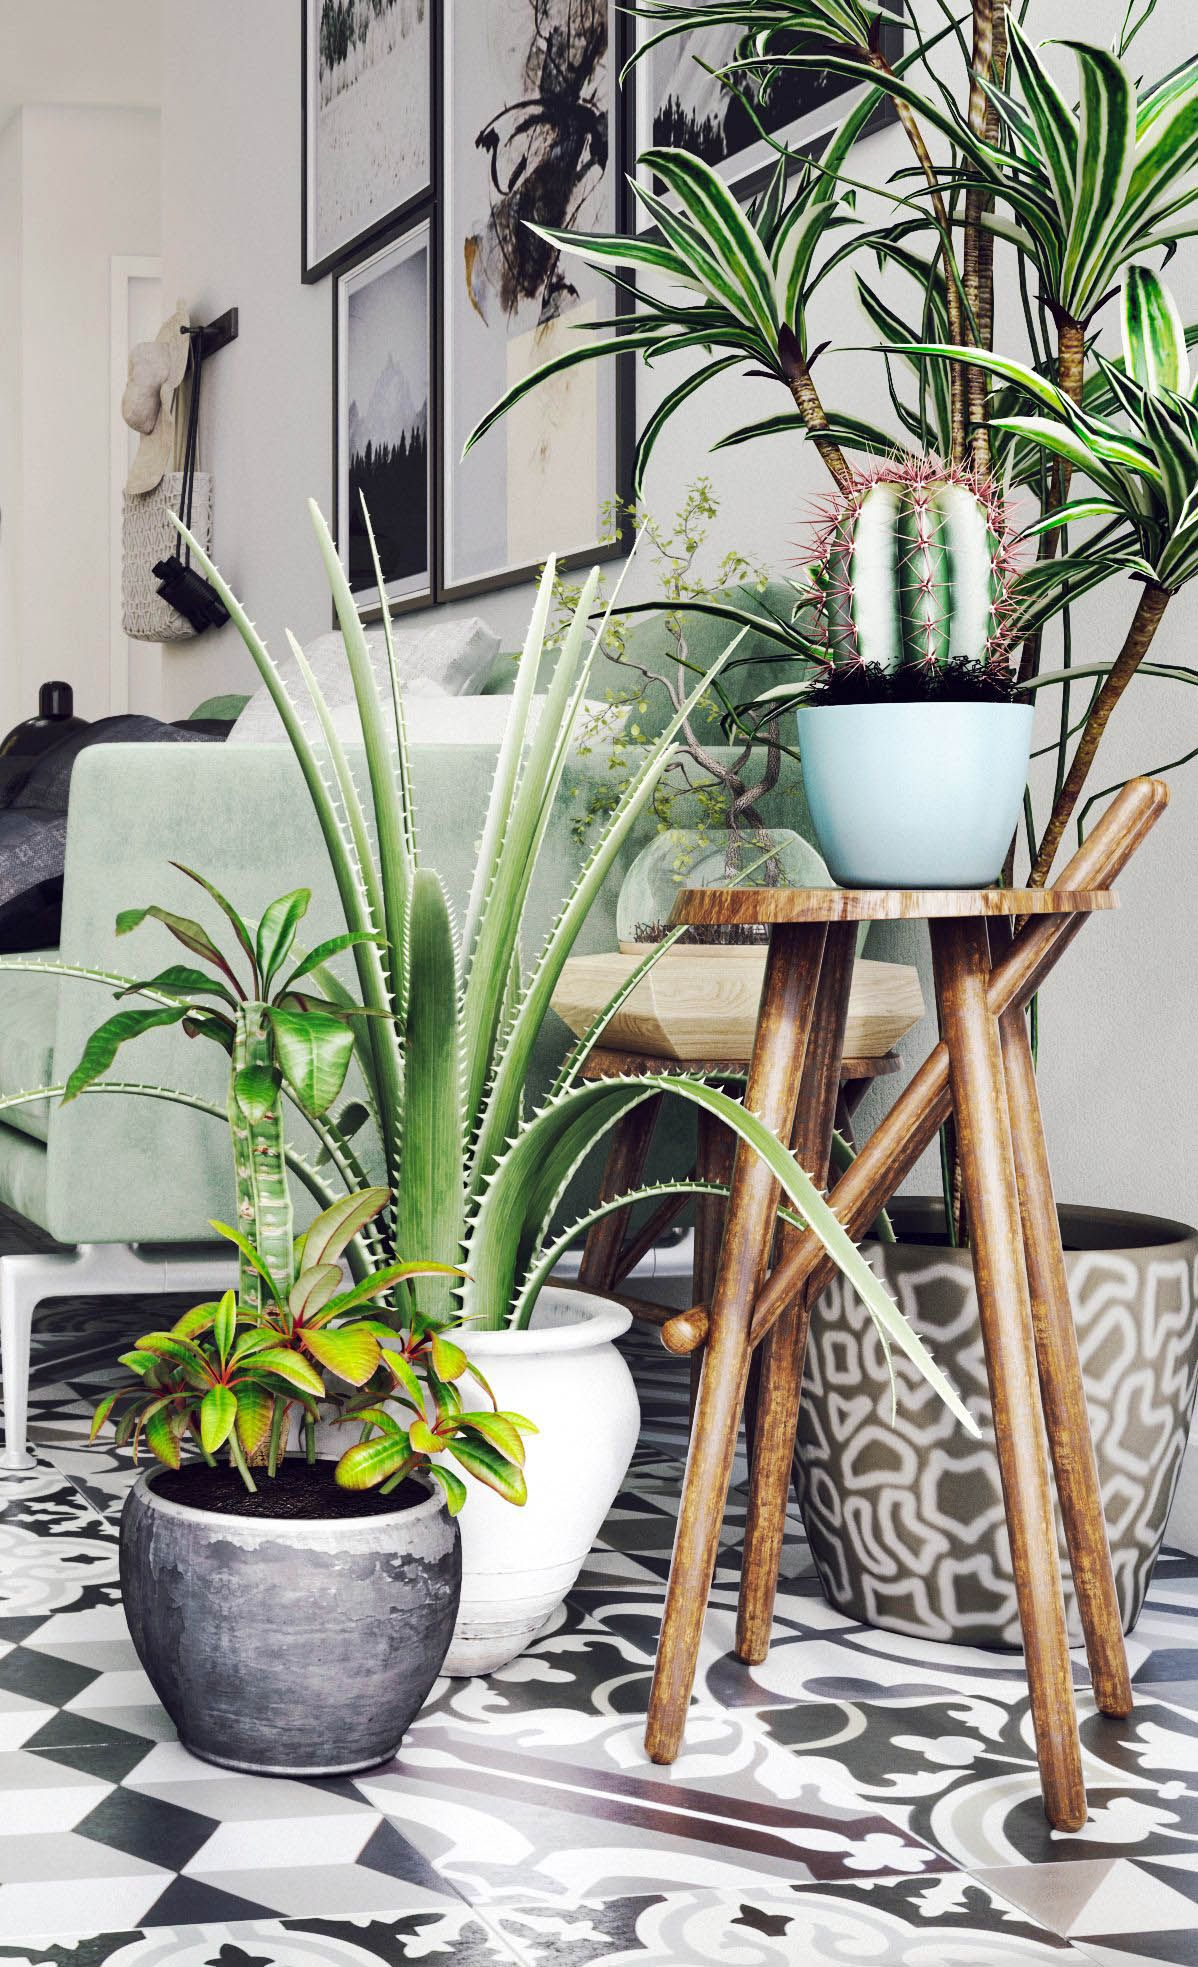 Indoor House Plant Display Ideas - valoblogi.com on house plant gift ideas, outdoor plant display ideas, house plant design ideas, house landscape design ideas, house landscaping ideas, air plant display ideas, house planters ideas,